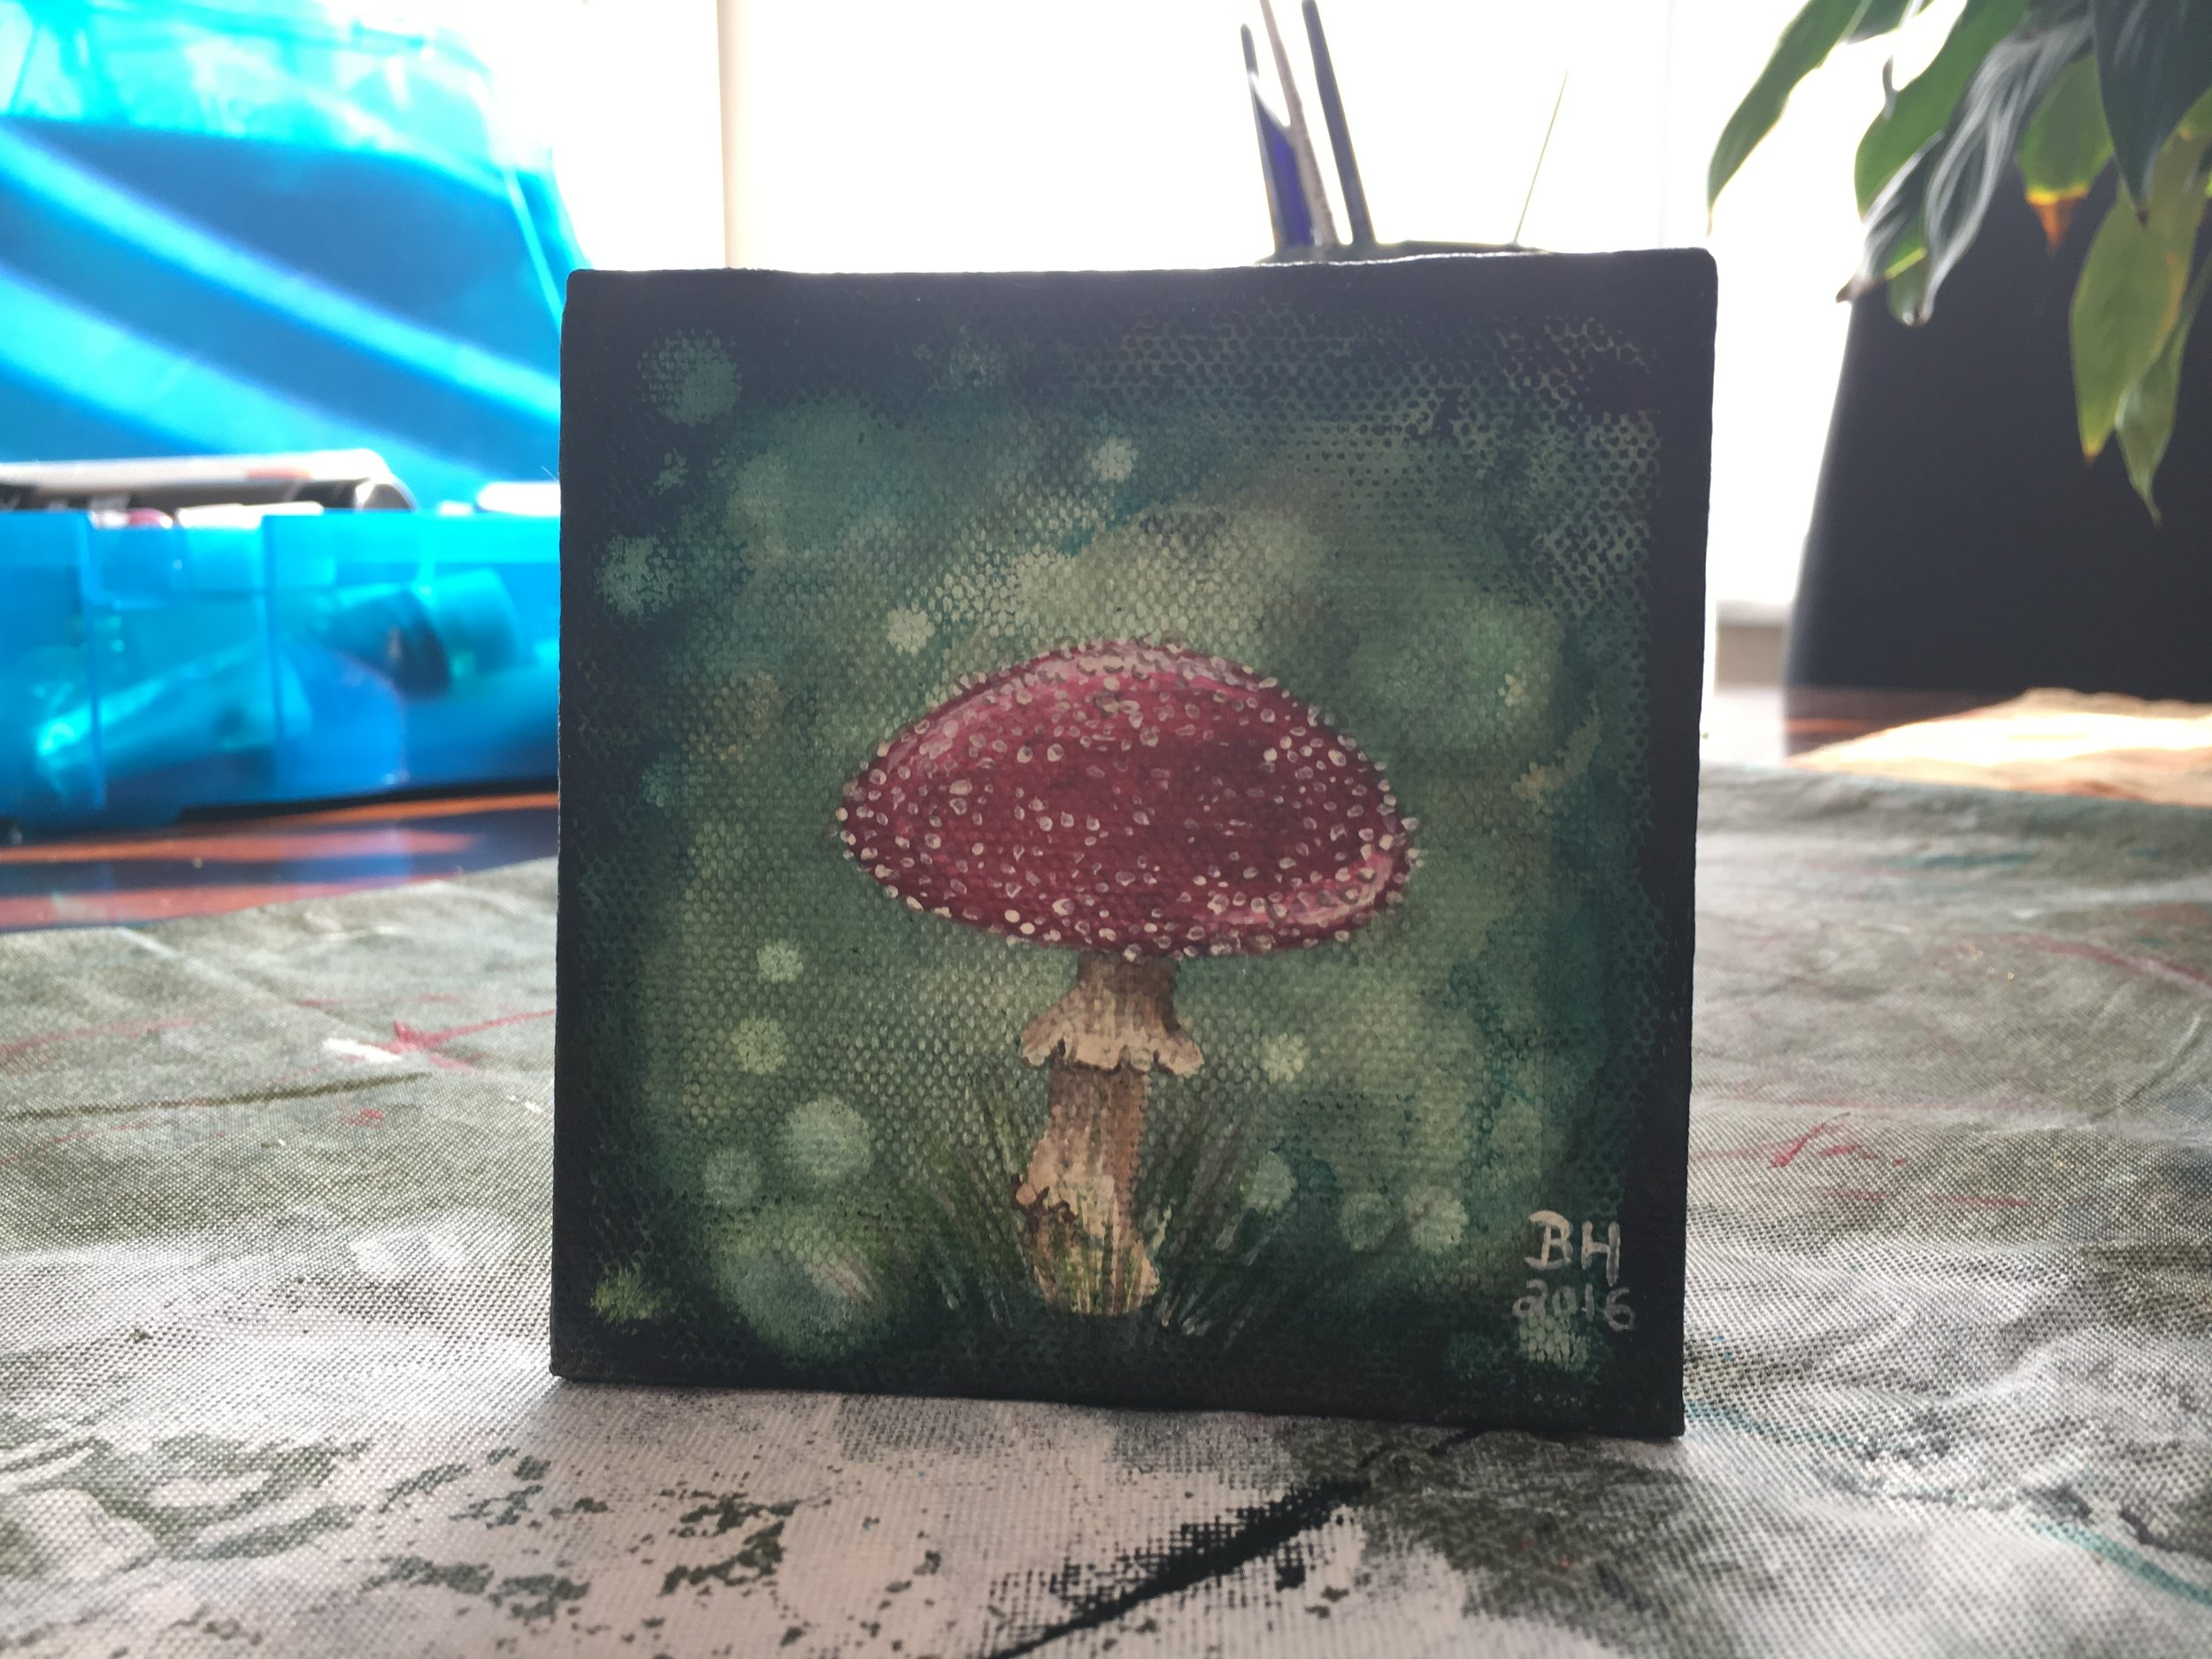 I recently replaced the stylized alligator I had painted on this mini canvas with a fun little mushroom, and I'm very happy I went back and reworked that painting that I didn't like instead of throwing the canvas in the garbage! (I throw away A LOT of failed attempts.)